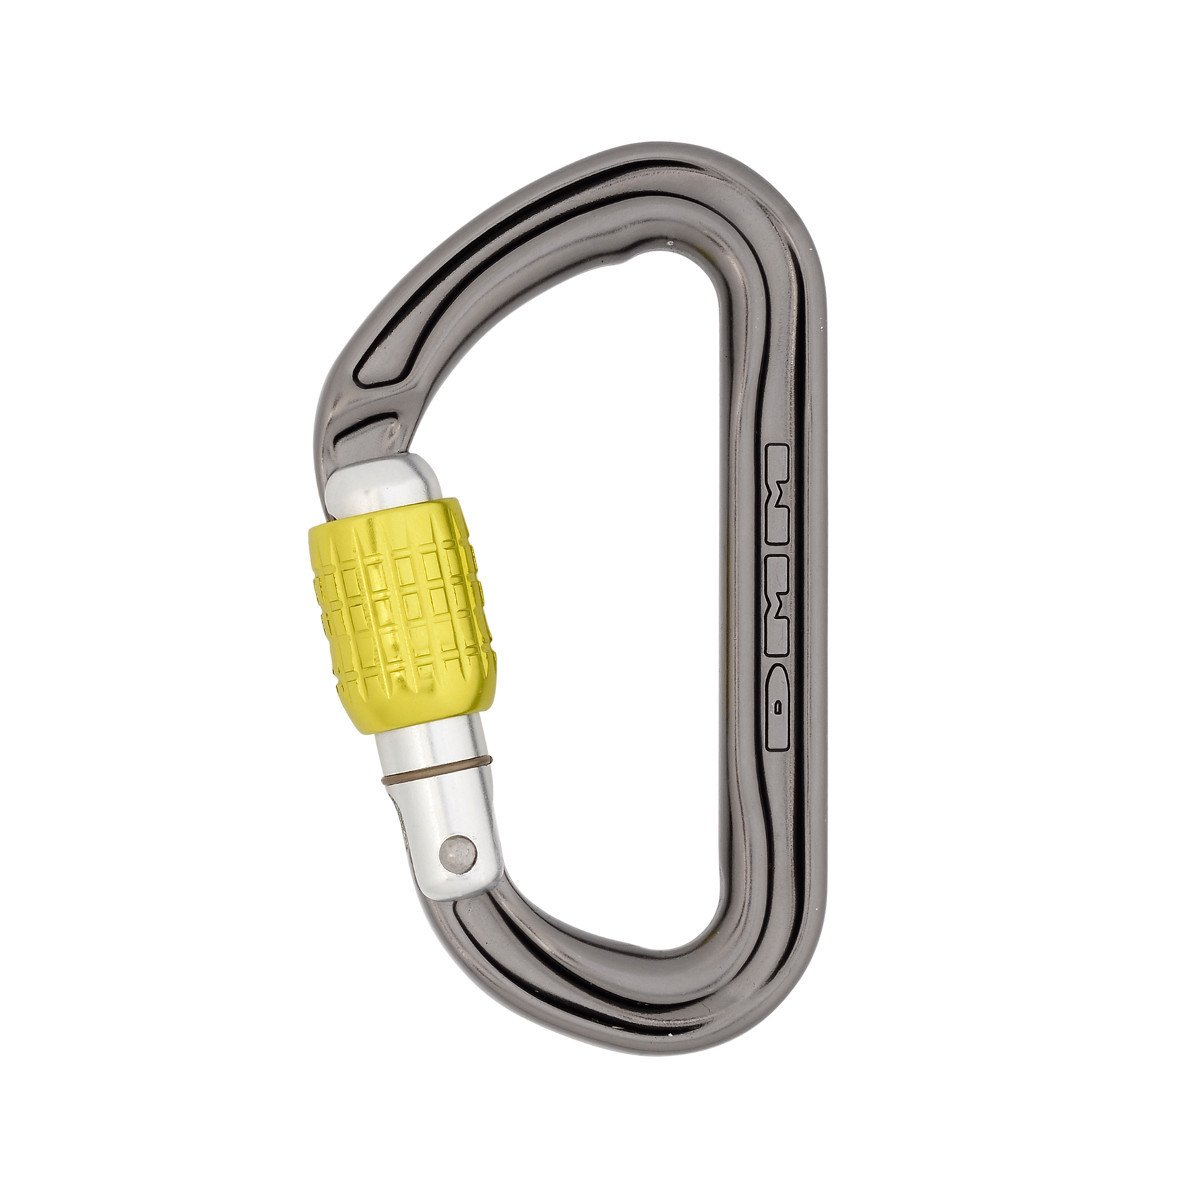 DMM Phantom Screwgate Carabiner, in gun metal grey and yellow screwlock